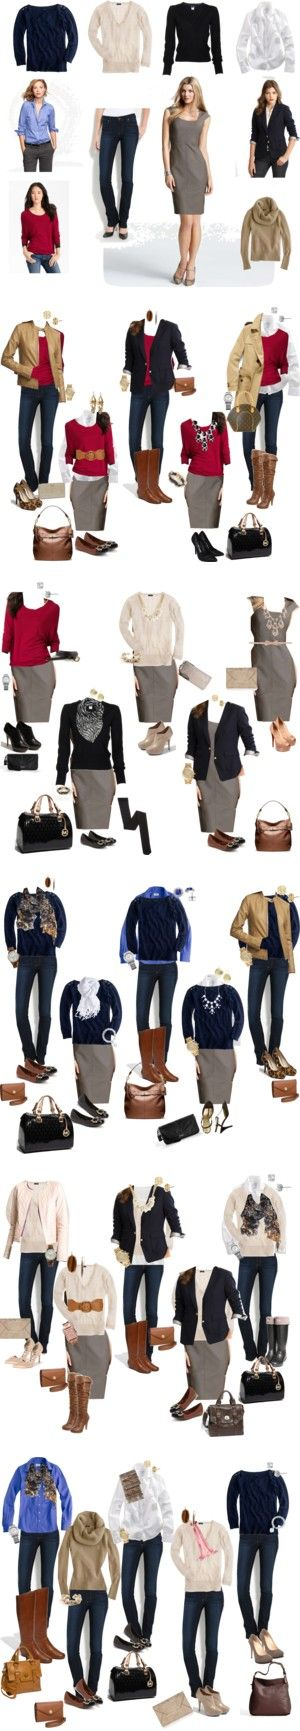 """10 piece outfits"" by regichka on Polyvore:"